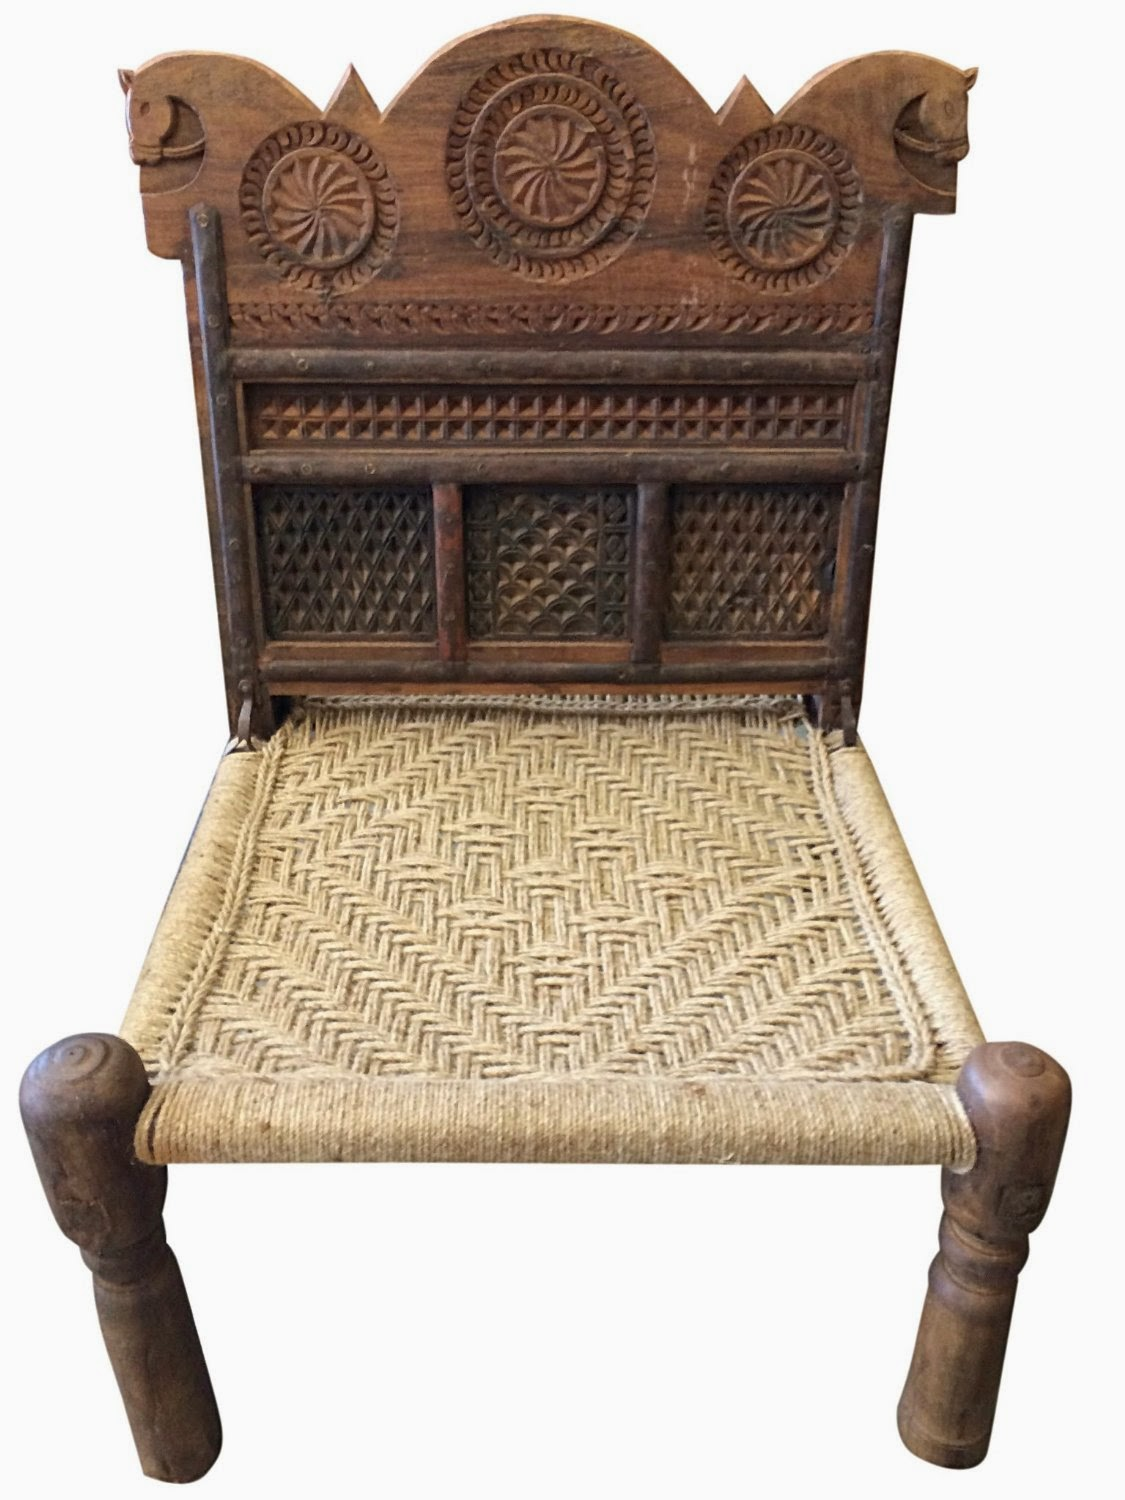 Indian Wooden Furnitures Indian Antique Furniture Furniture Vintage Rustic Indian Jaipur